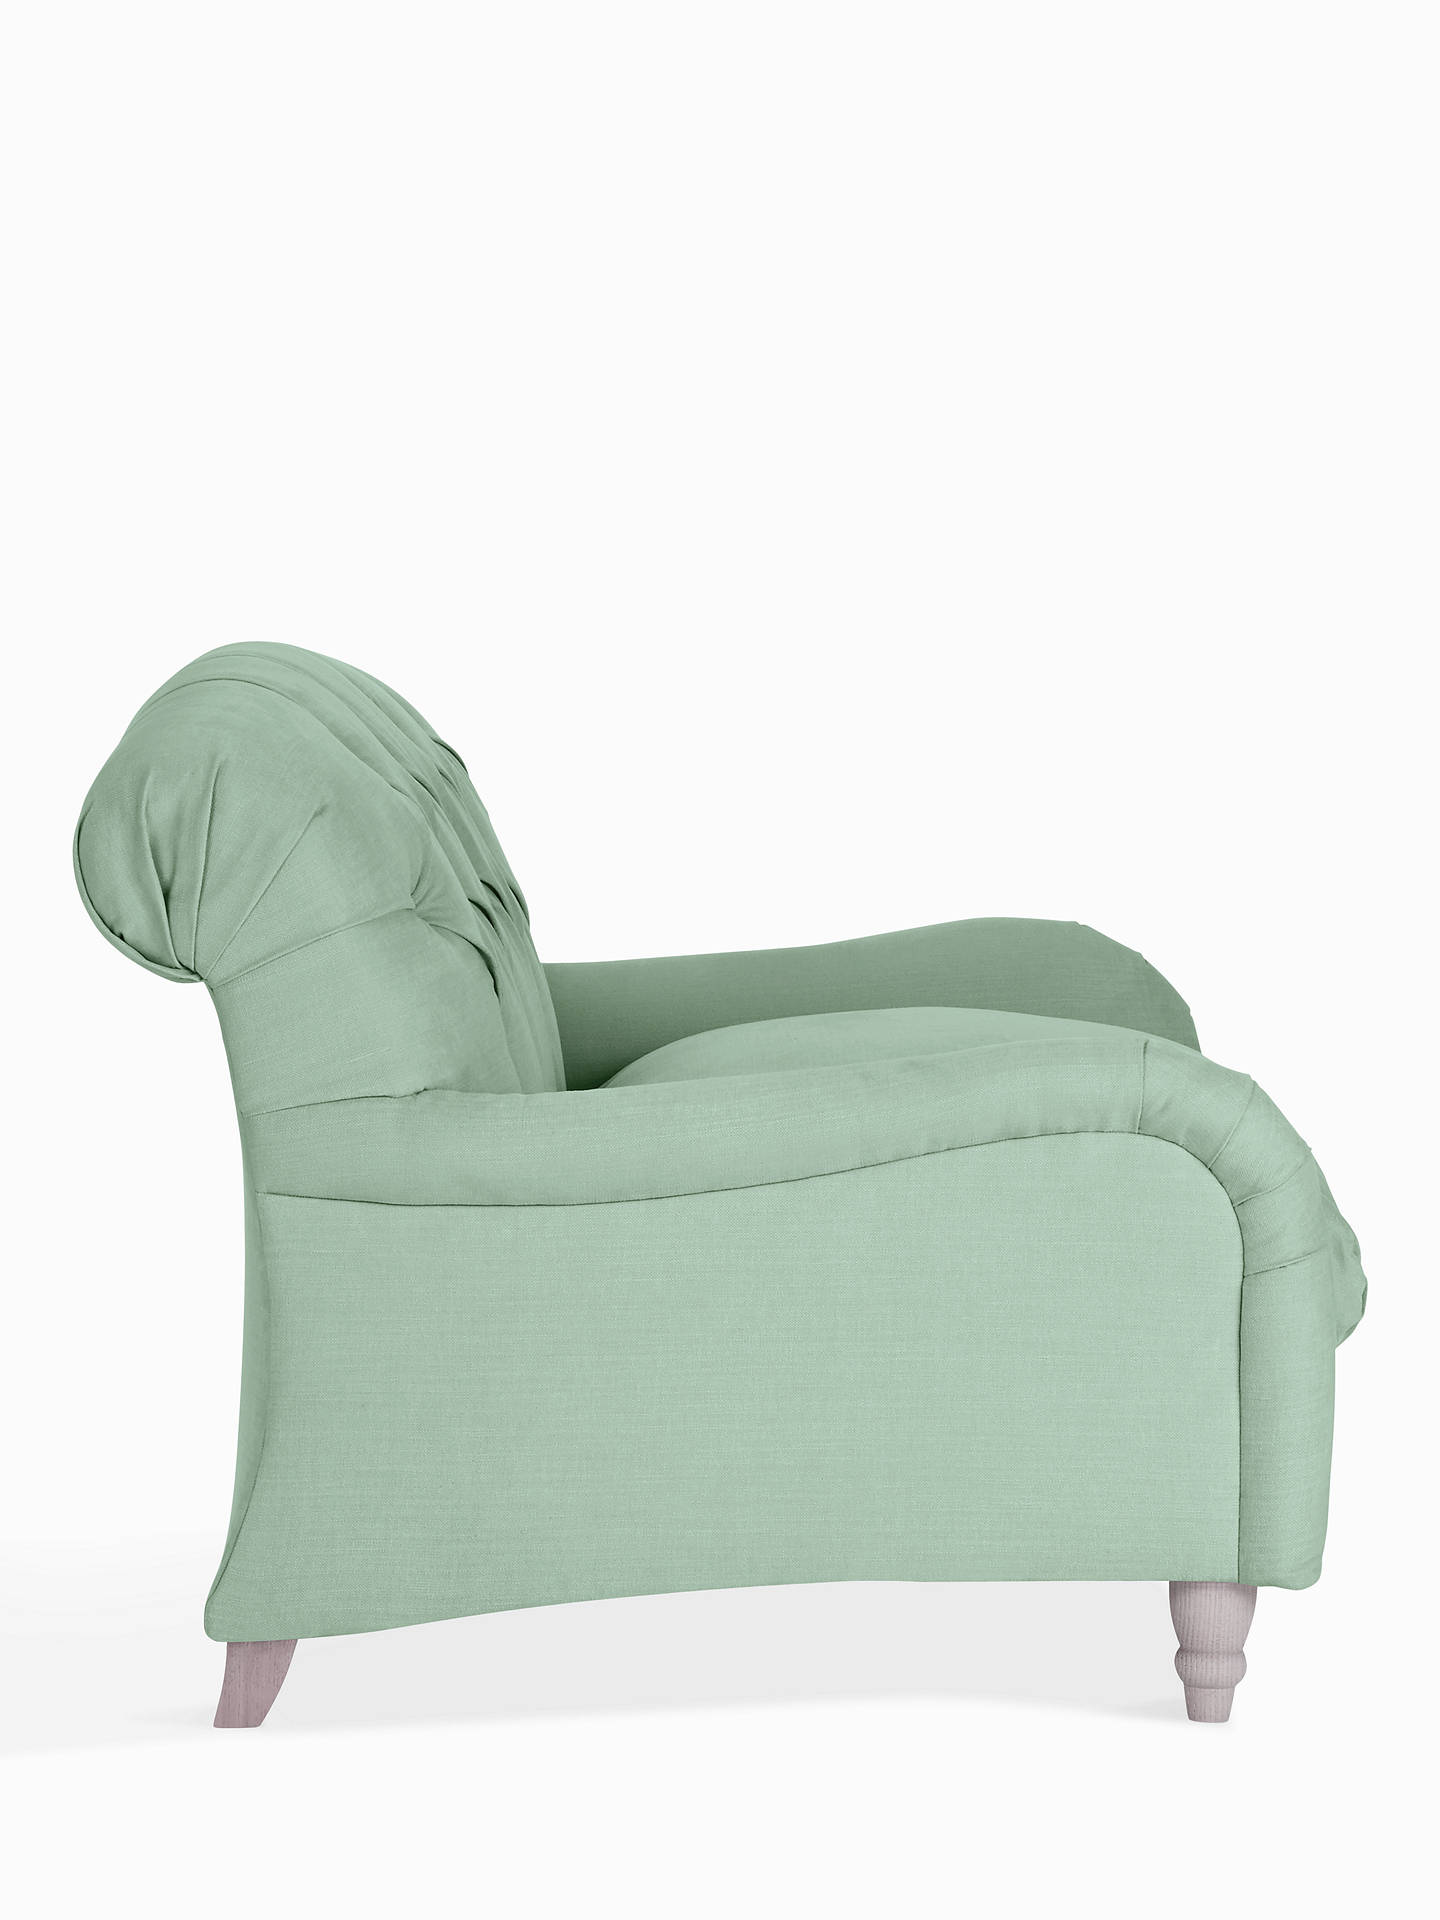 Crumble Medium 2 Seater Sofa By Loaf At John Lewis, Clever